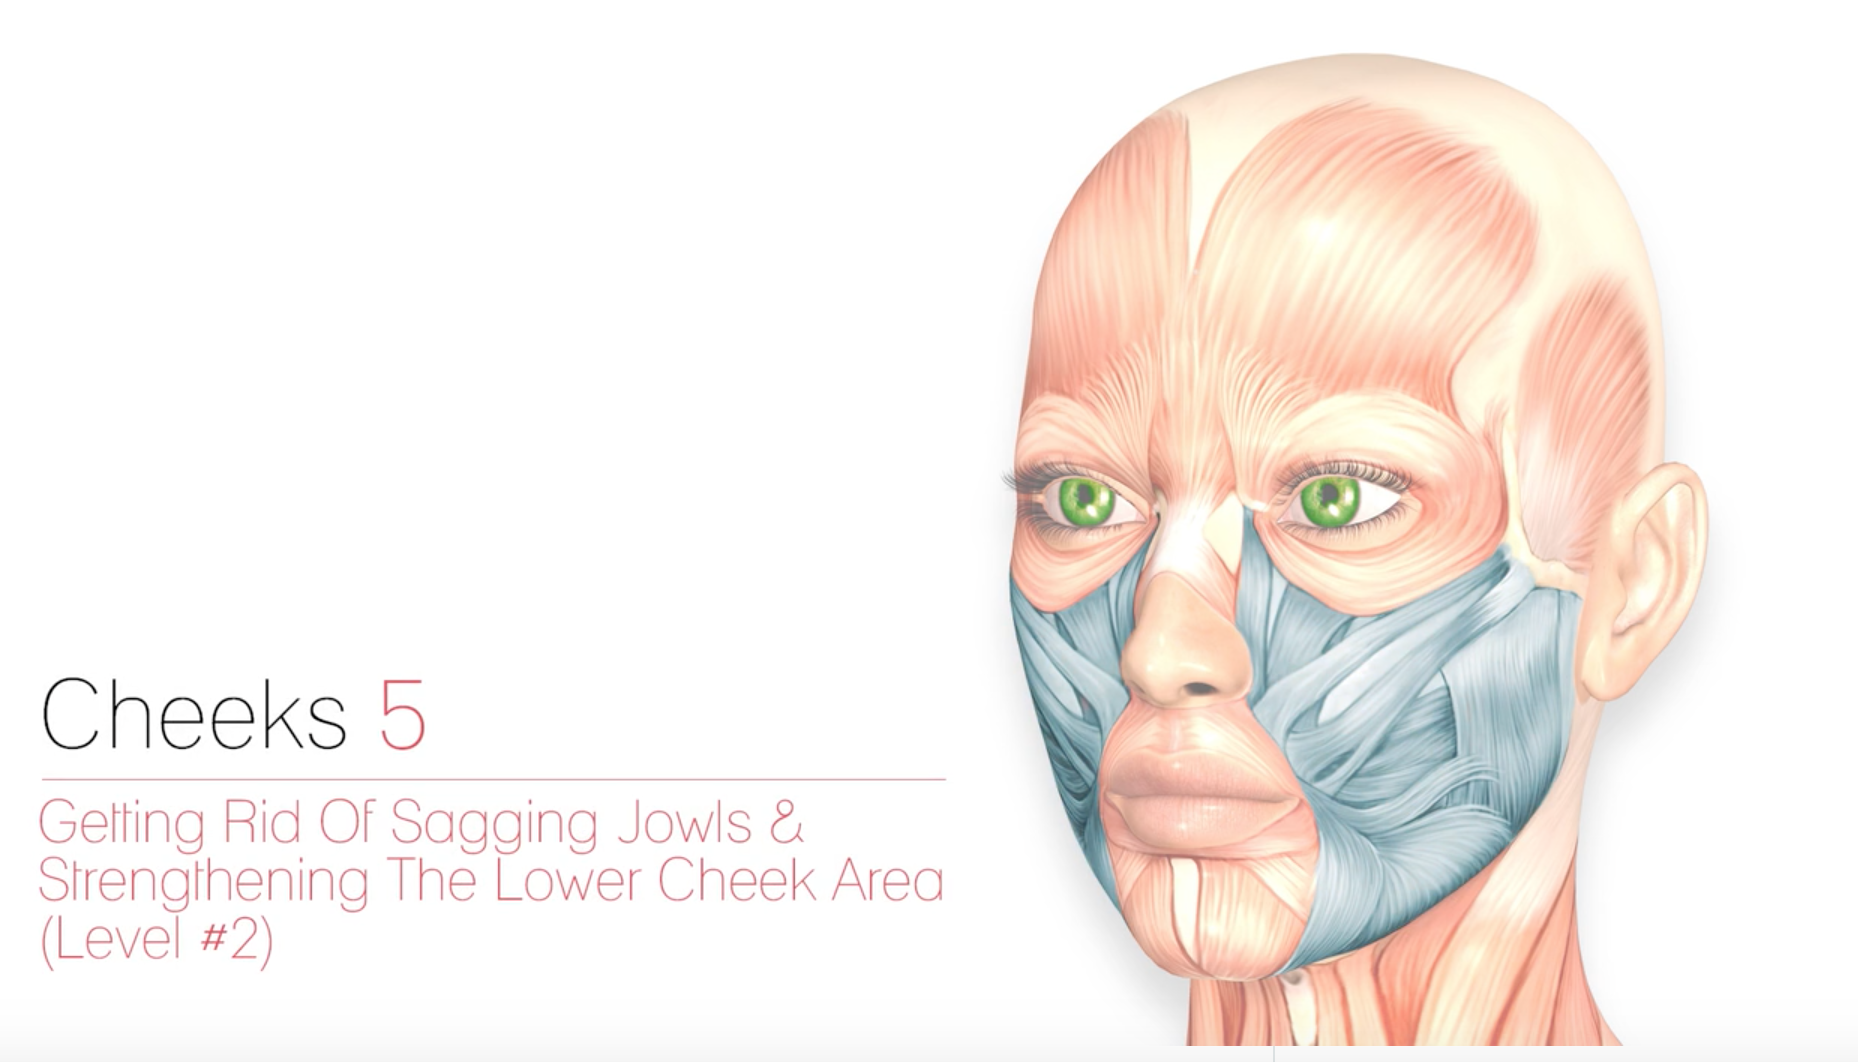 Cheeks 5 – Getting Rid of Sagging Jowls (Level 2)